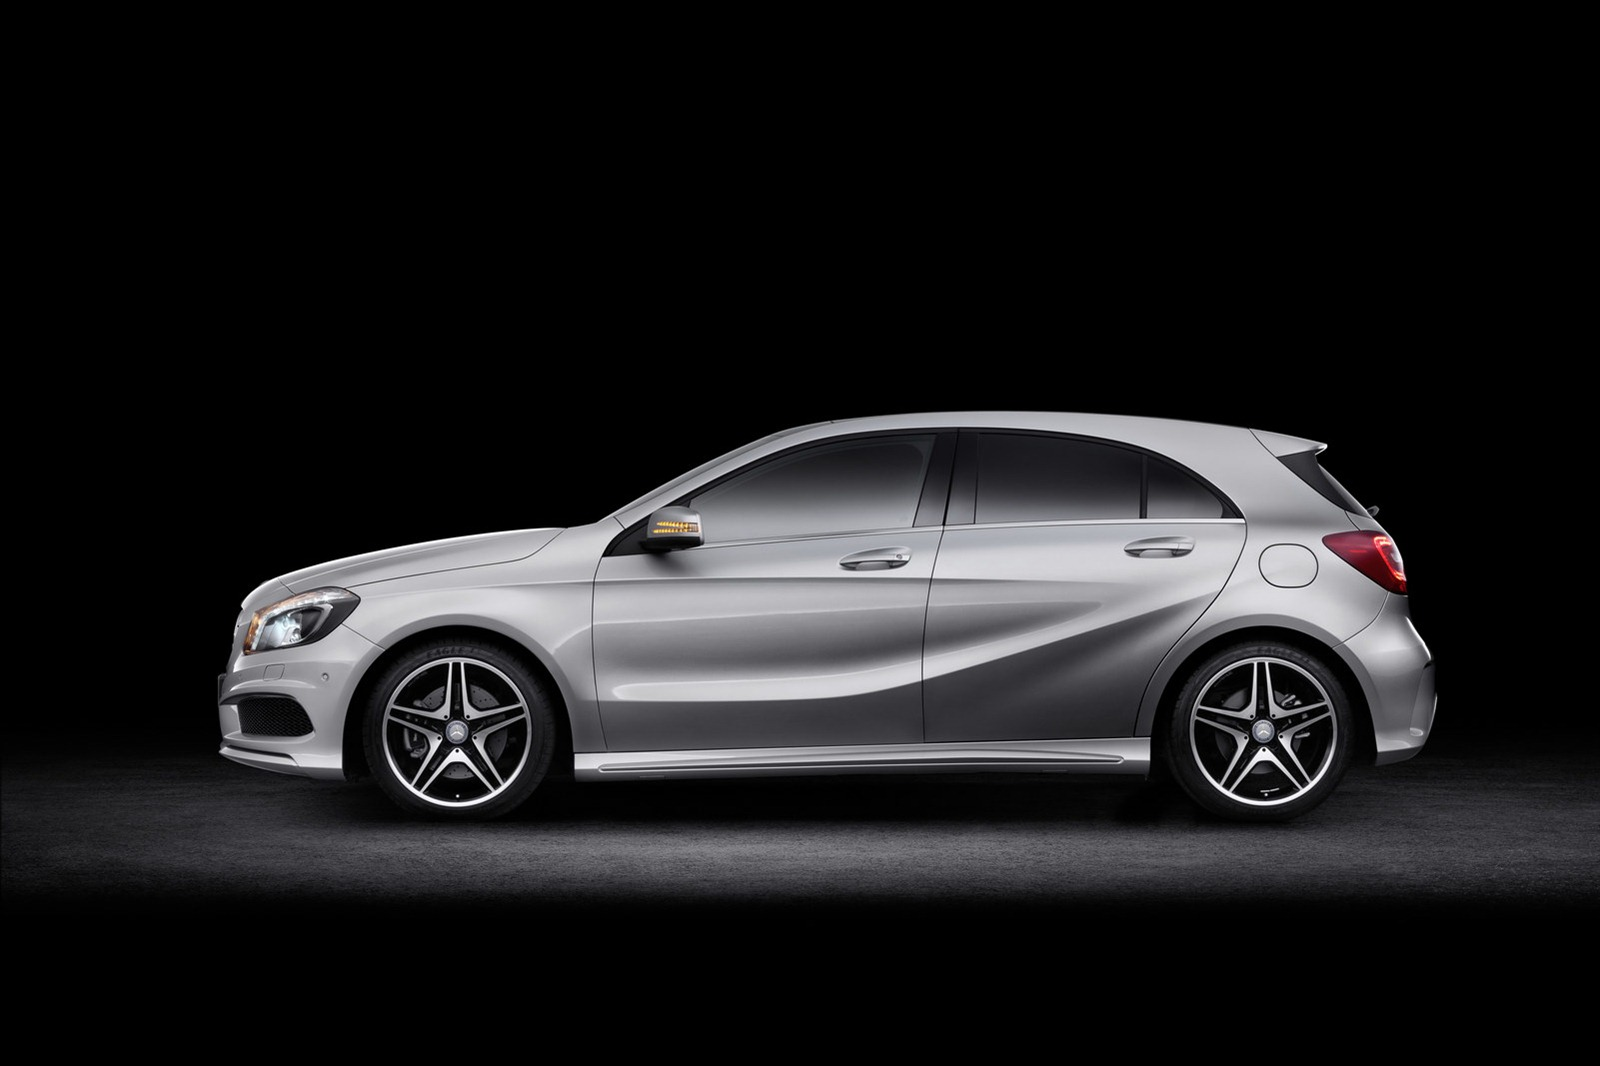 2012 Mercedes Benz A-Class New Photos Released - autoevolution